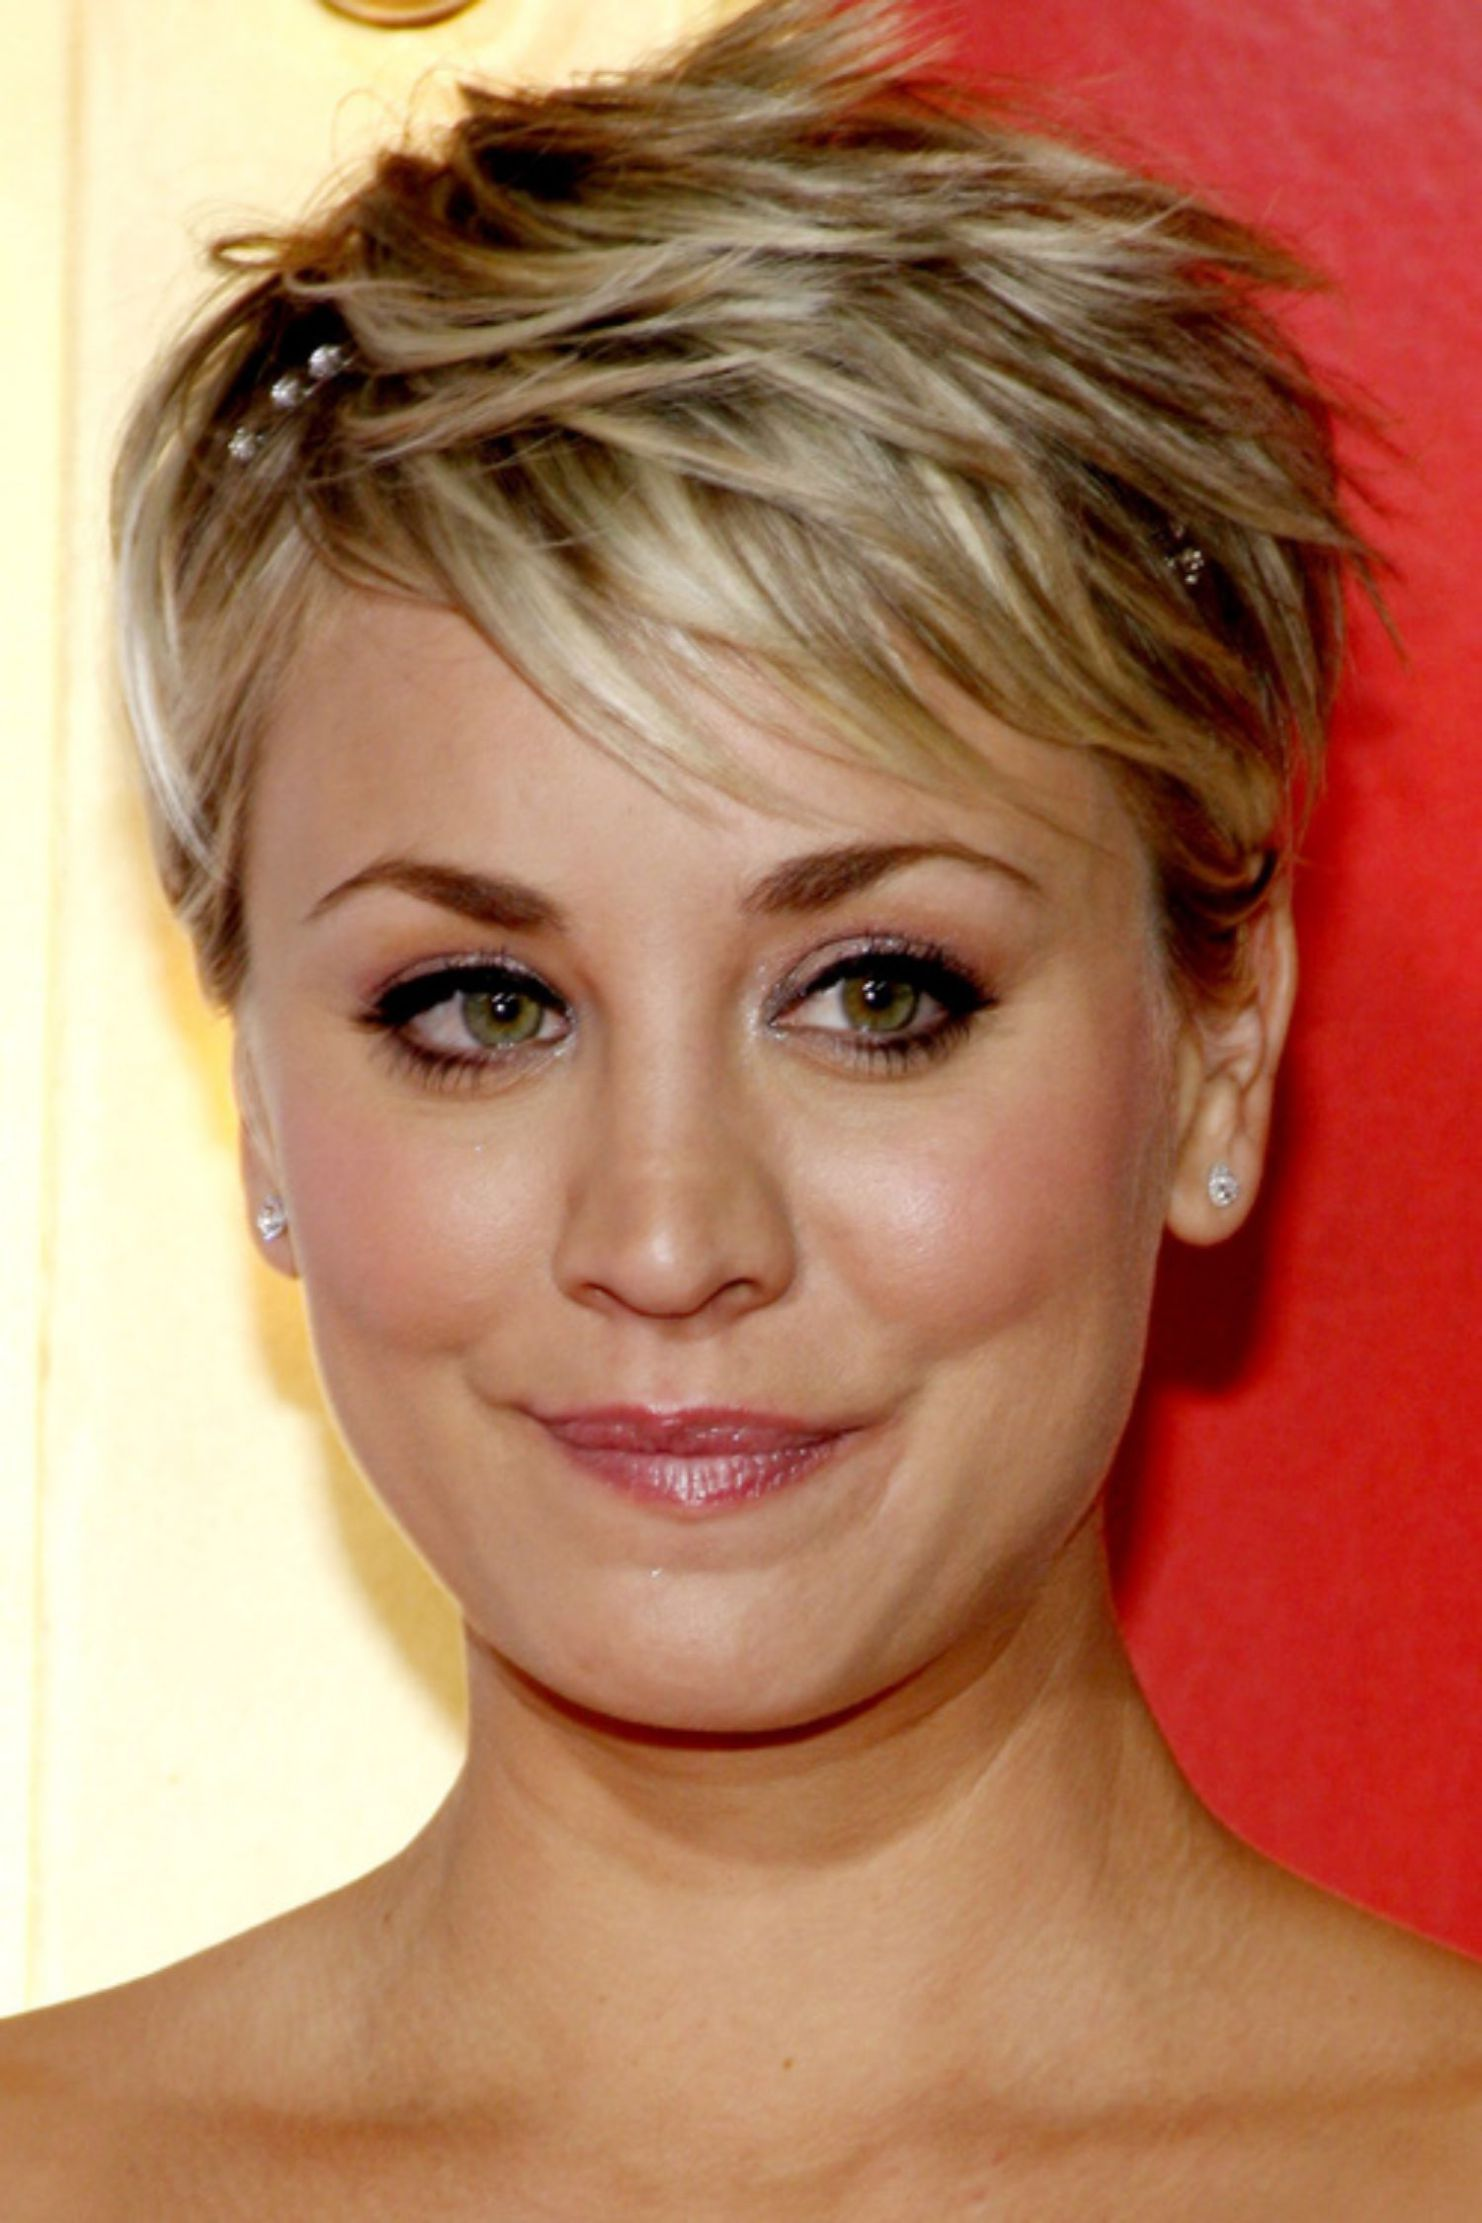 Pixie haircuts with bangs terrific tapers my stuff